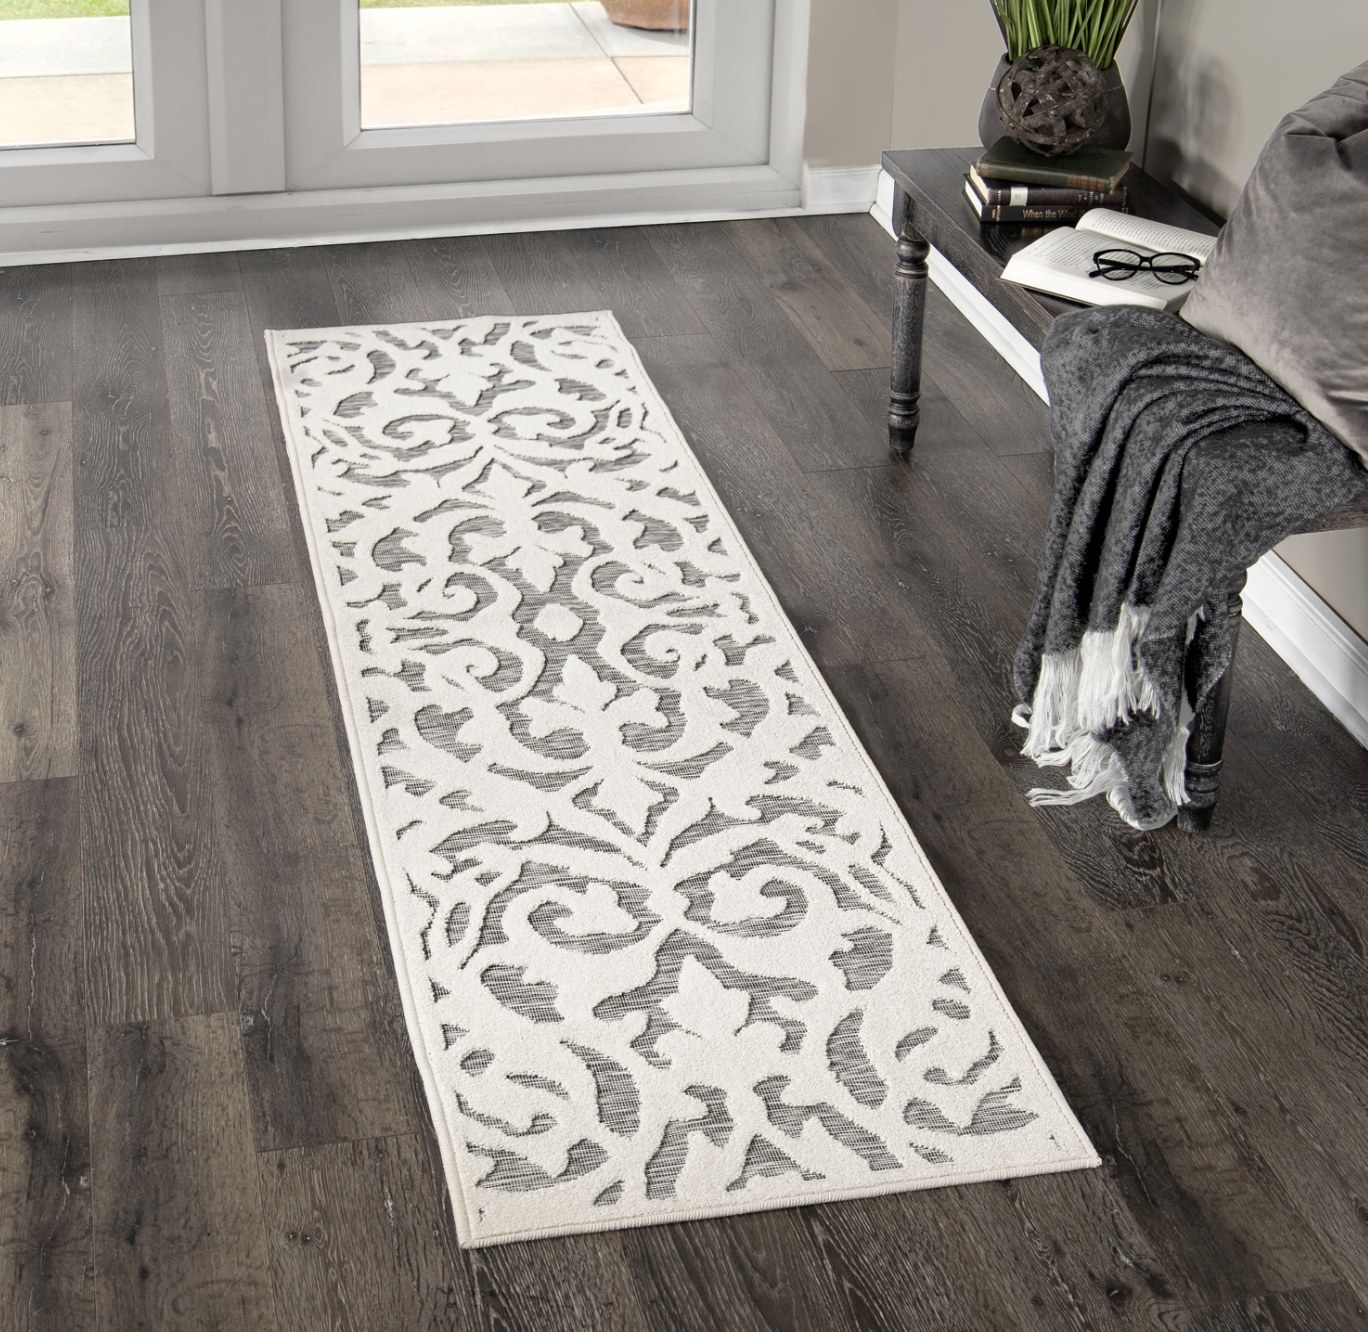 A white and grey floor runner